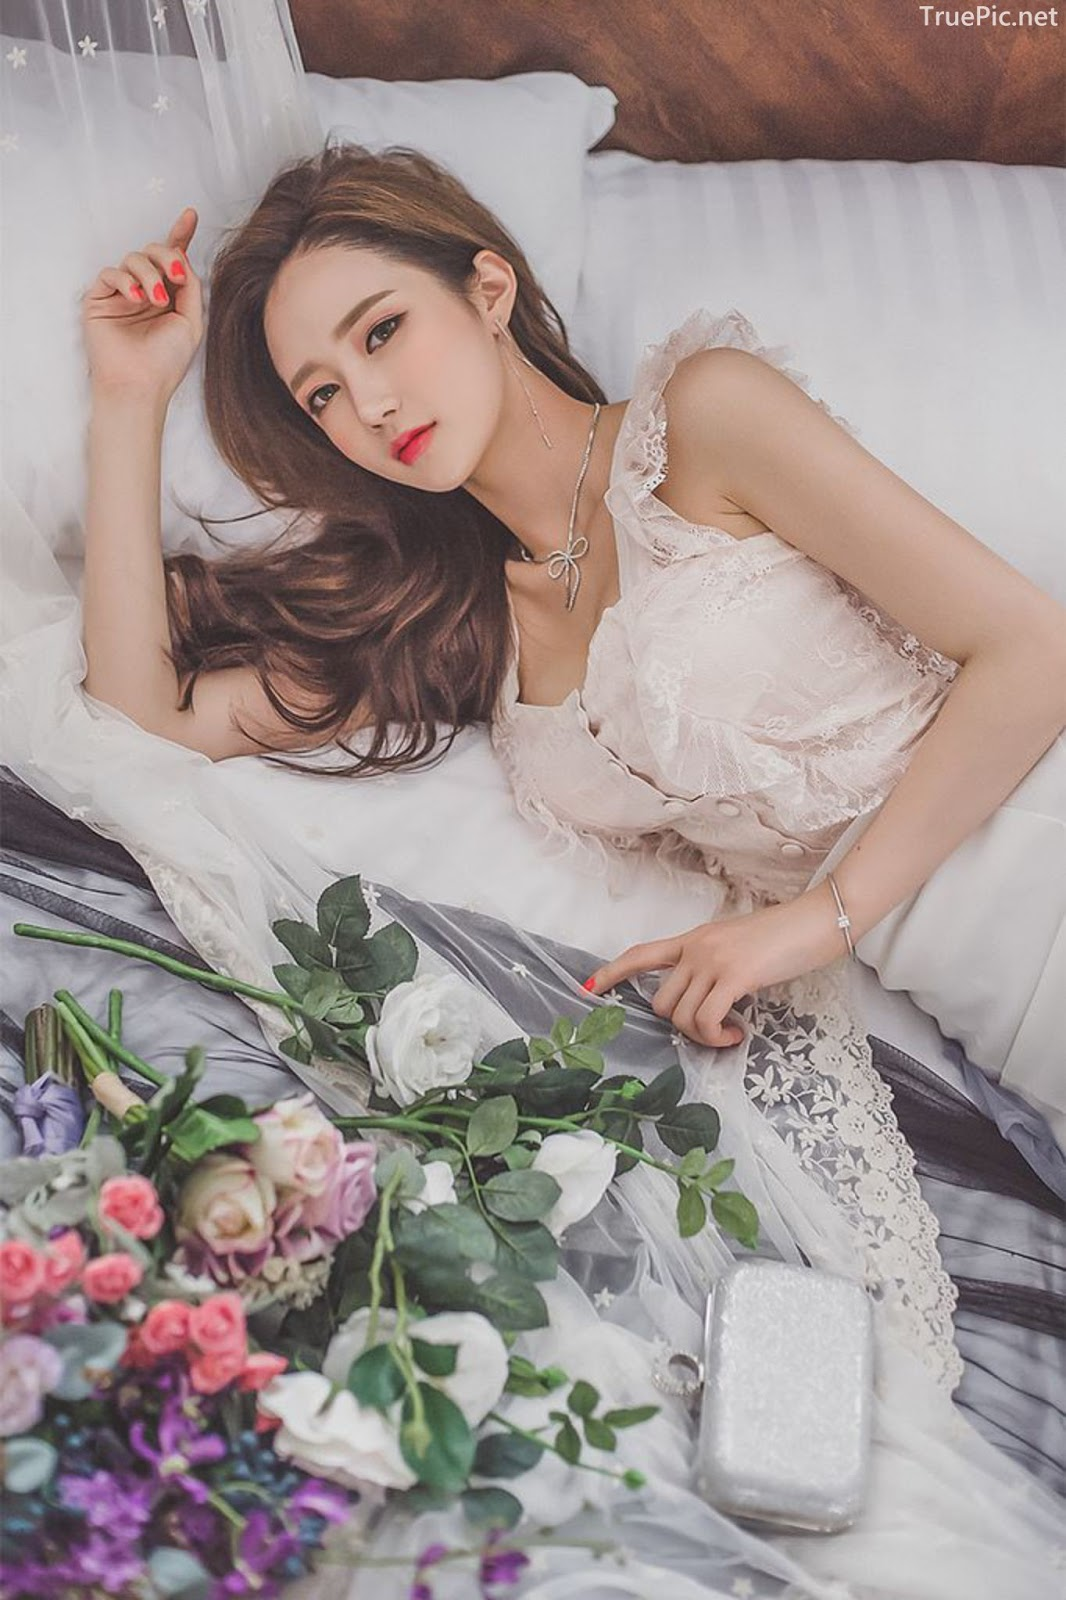 Lee Yeon Jeong - Indoor Photoshoot Collection - Korean fashion model - Part 2 - Picture 1